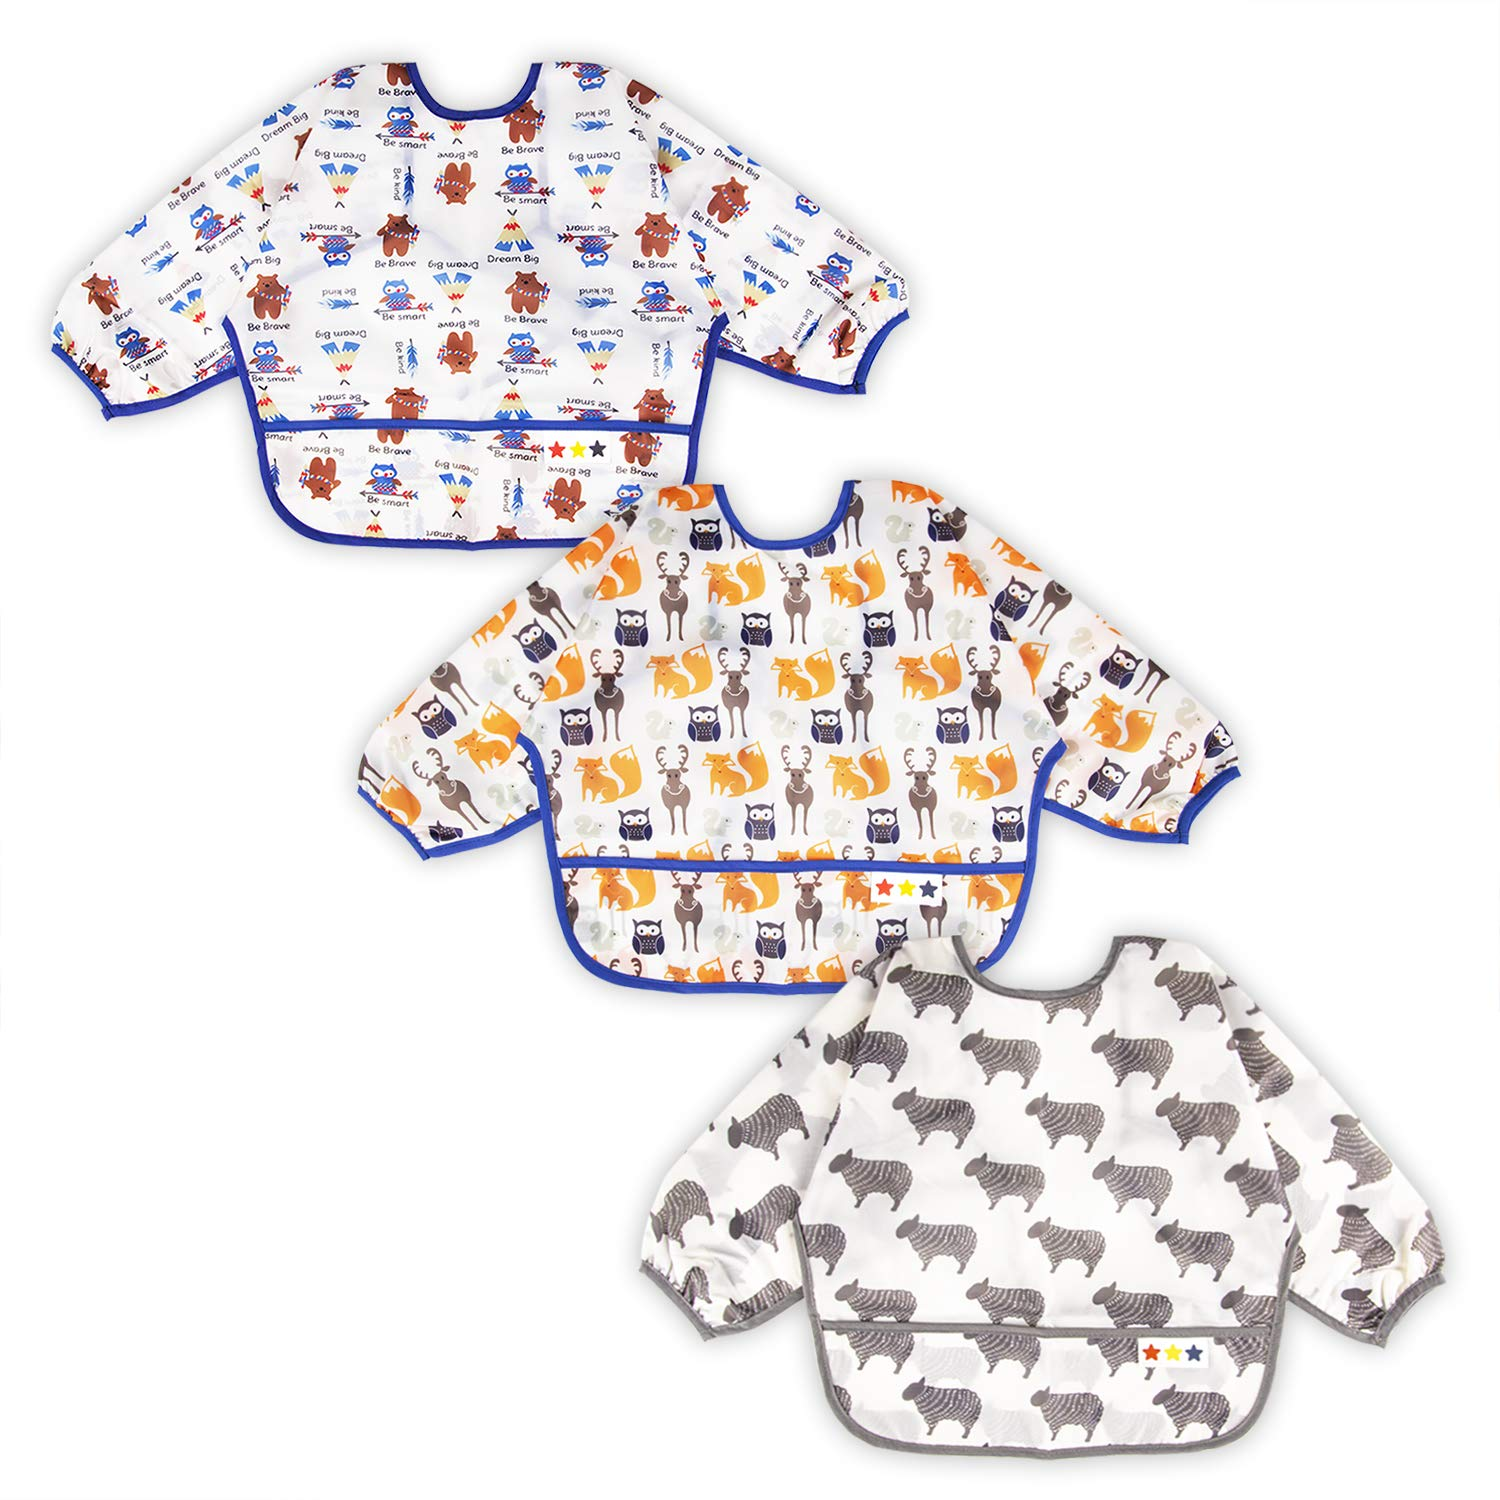 3 Pcs Long Sleeved Bib Set   Baby Waterproof Bibs with Pocket Bundle   Toddler Bib with Sleeves and Crumb Catcher   Stain and Odor Resistance Play Smock Apron - Pack of 3   6-24 Months